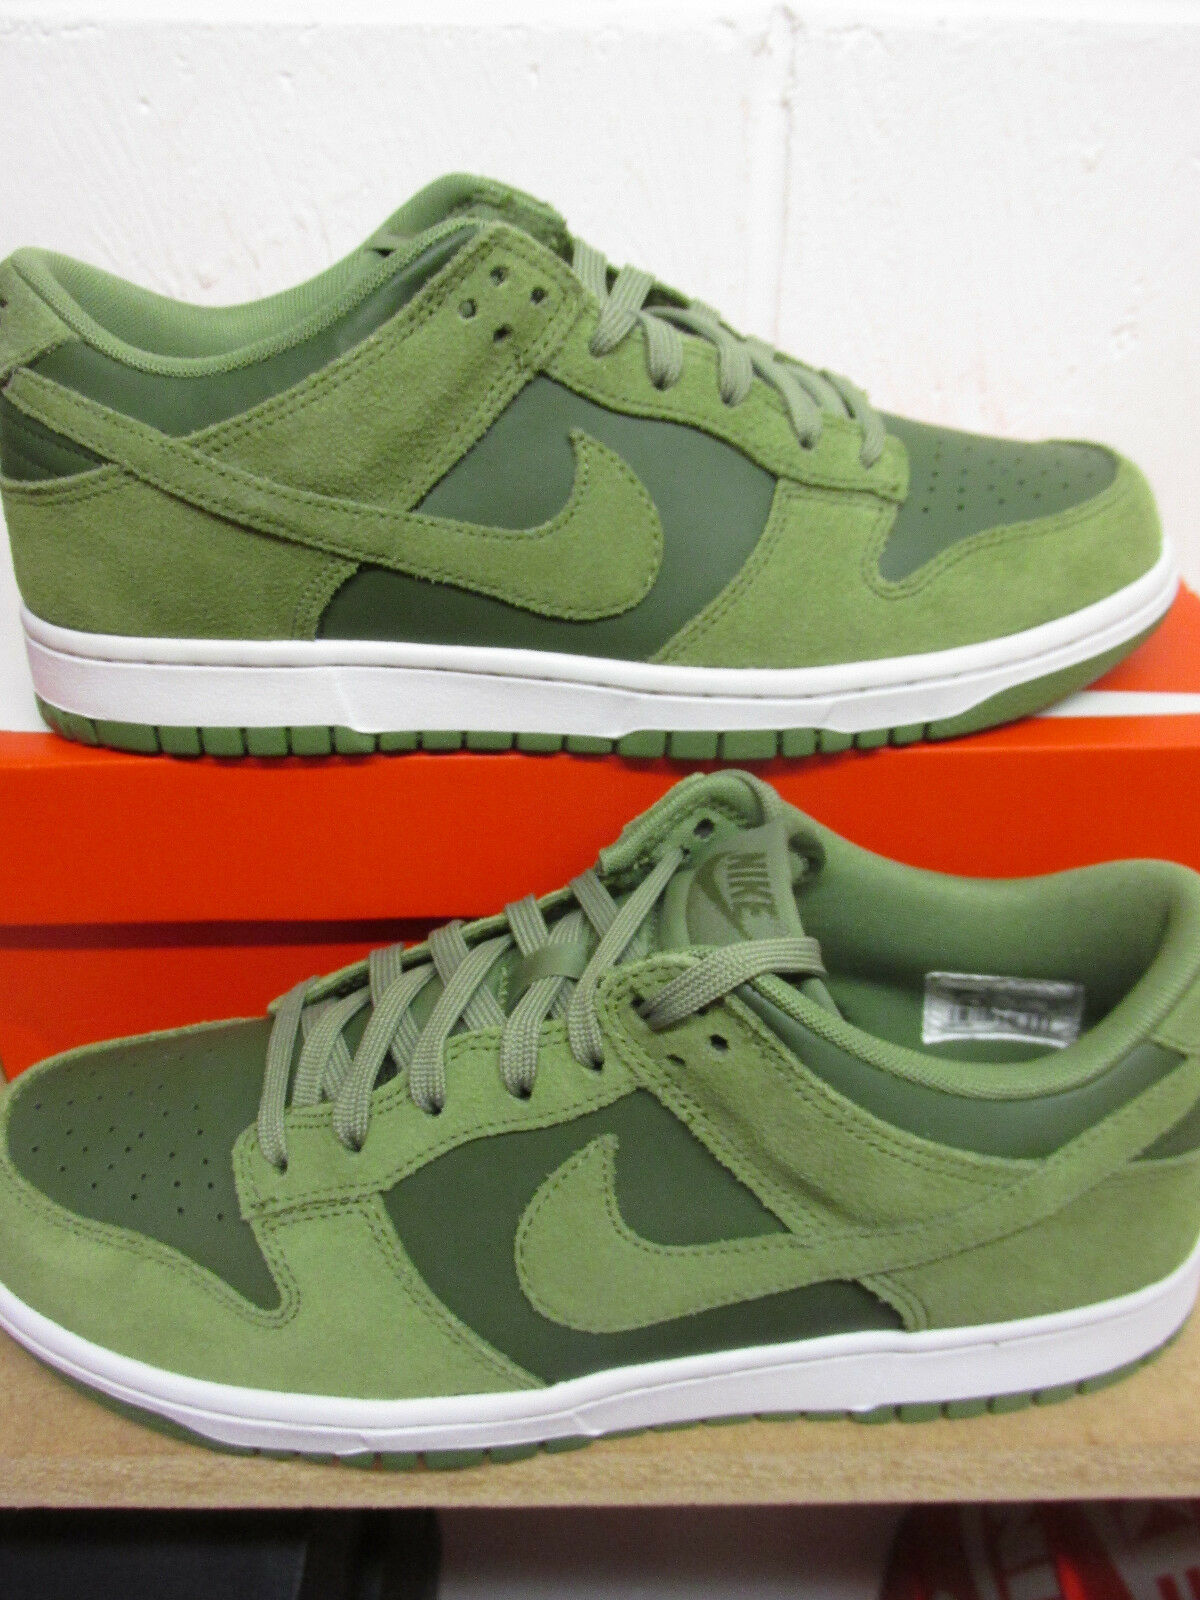 Nike Dunk Low Mens Trainers 904234 300 Sneakers Shoes